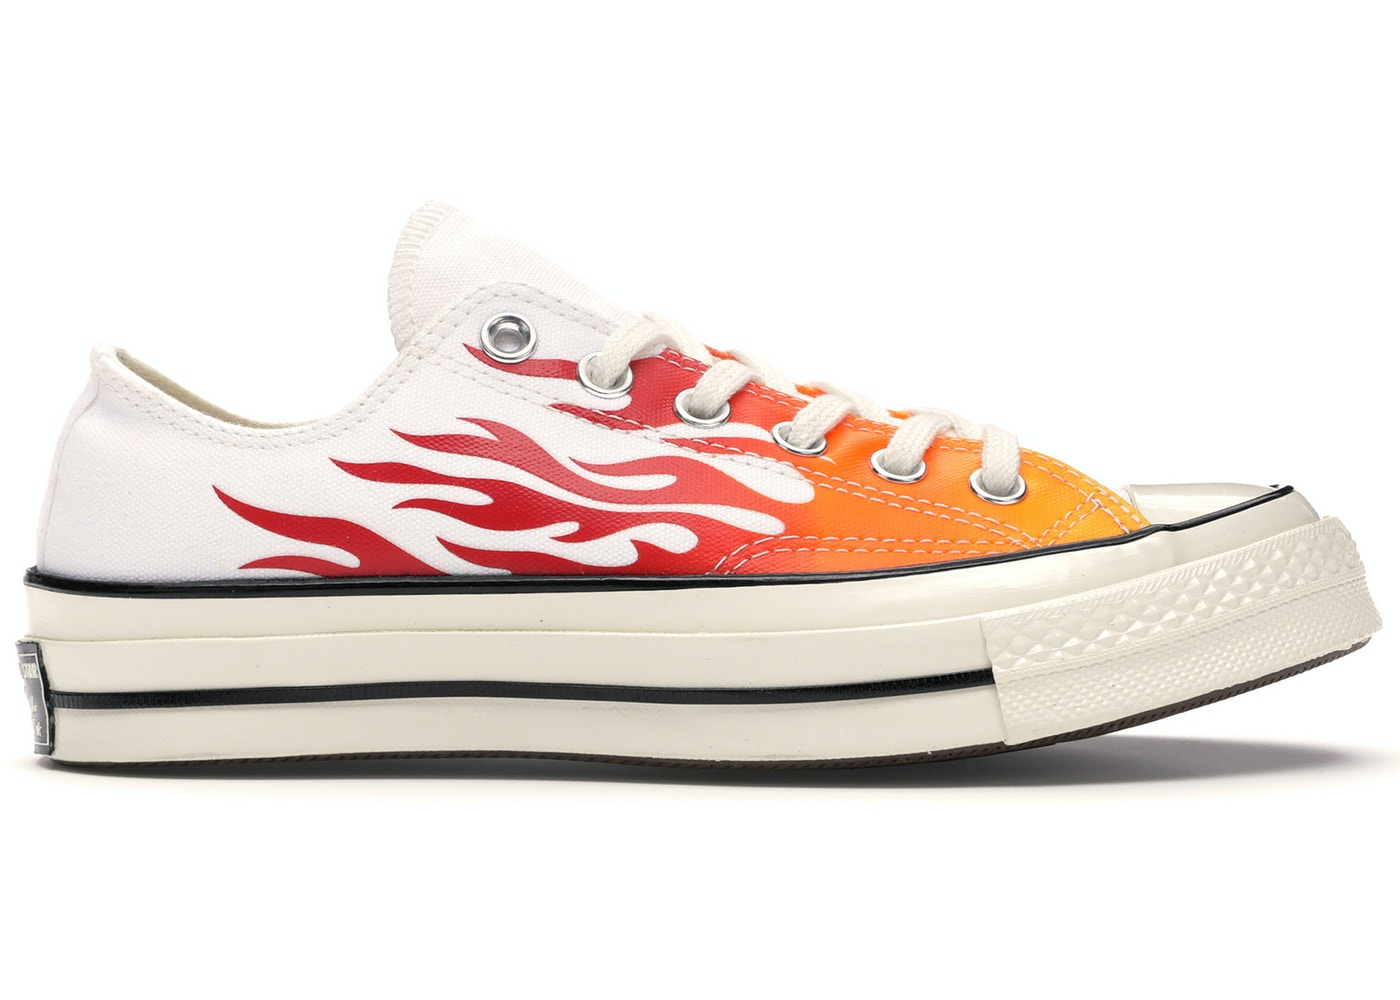 Converse One Star Ox White/Enamel Red // Available Now